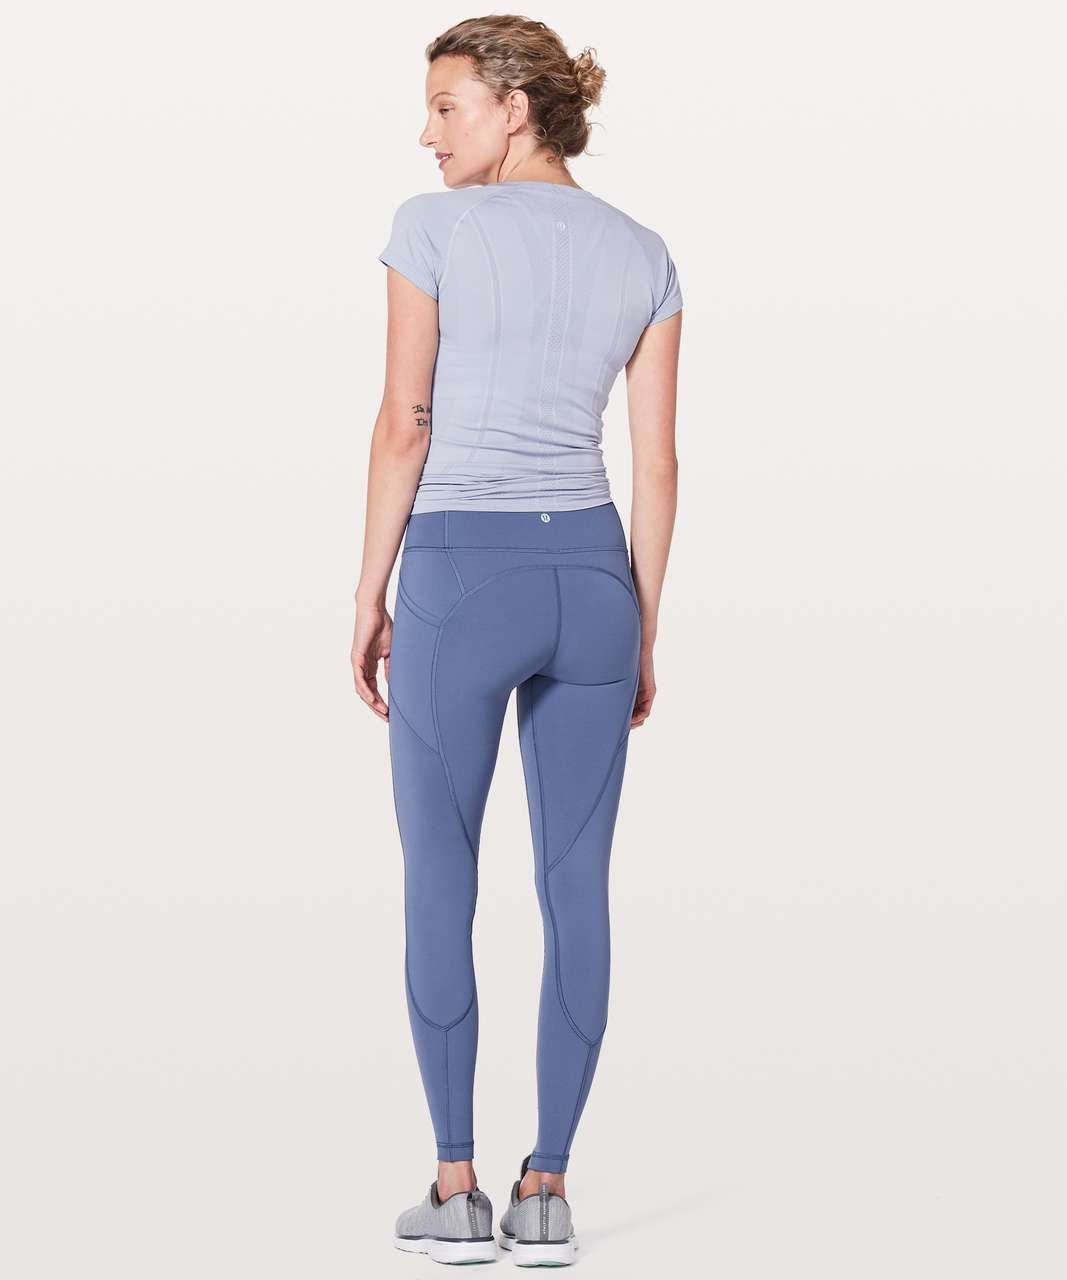 a01aeb2baedcf Lululemon All The Right Places Pant II  28